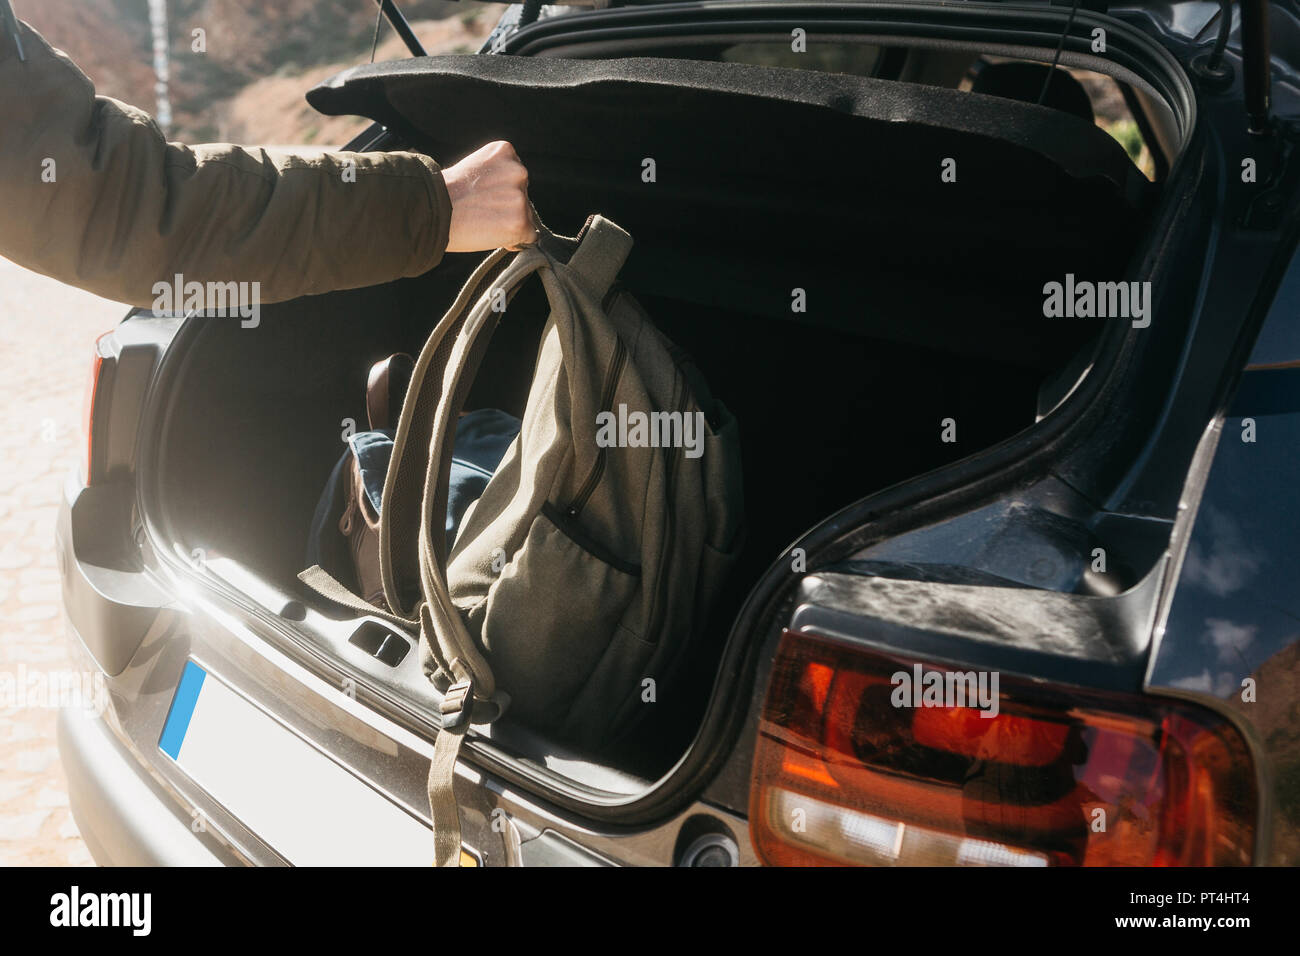 A man or a tourist puts a backpack in the trunk of a car. Preparation for the trip. The concept of tourism or travel by car. Stock Photo